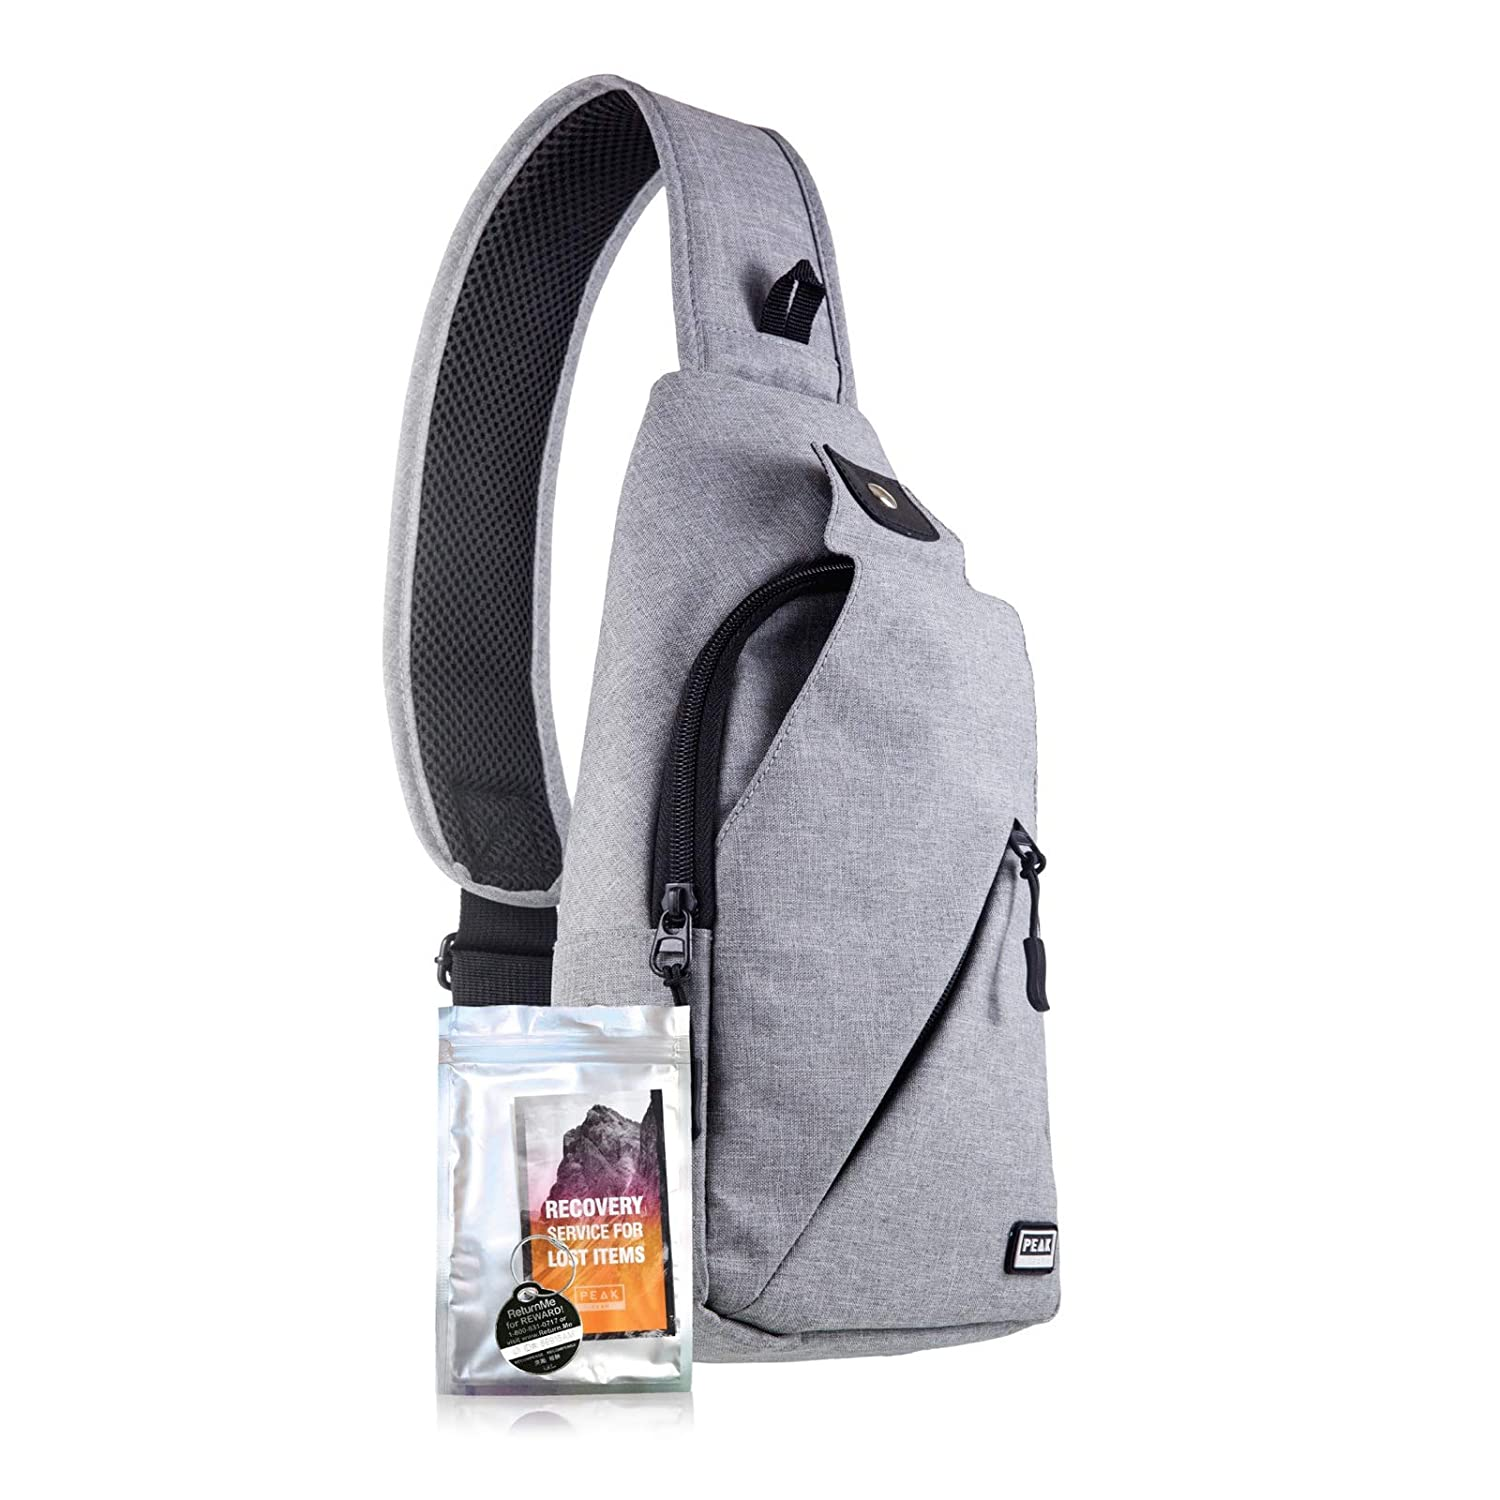 Peak Gear Sling Compact Crossbody Backpack and Day Bag – w Lifetime Lost Found ID